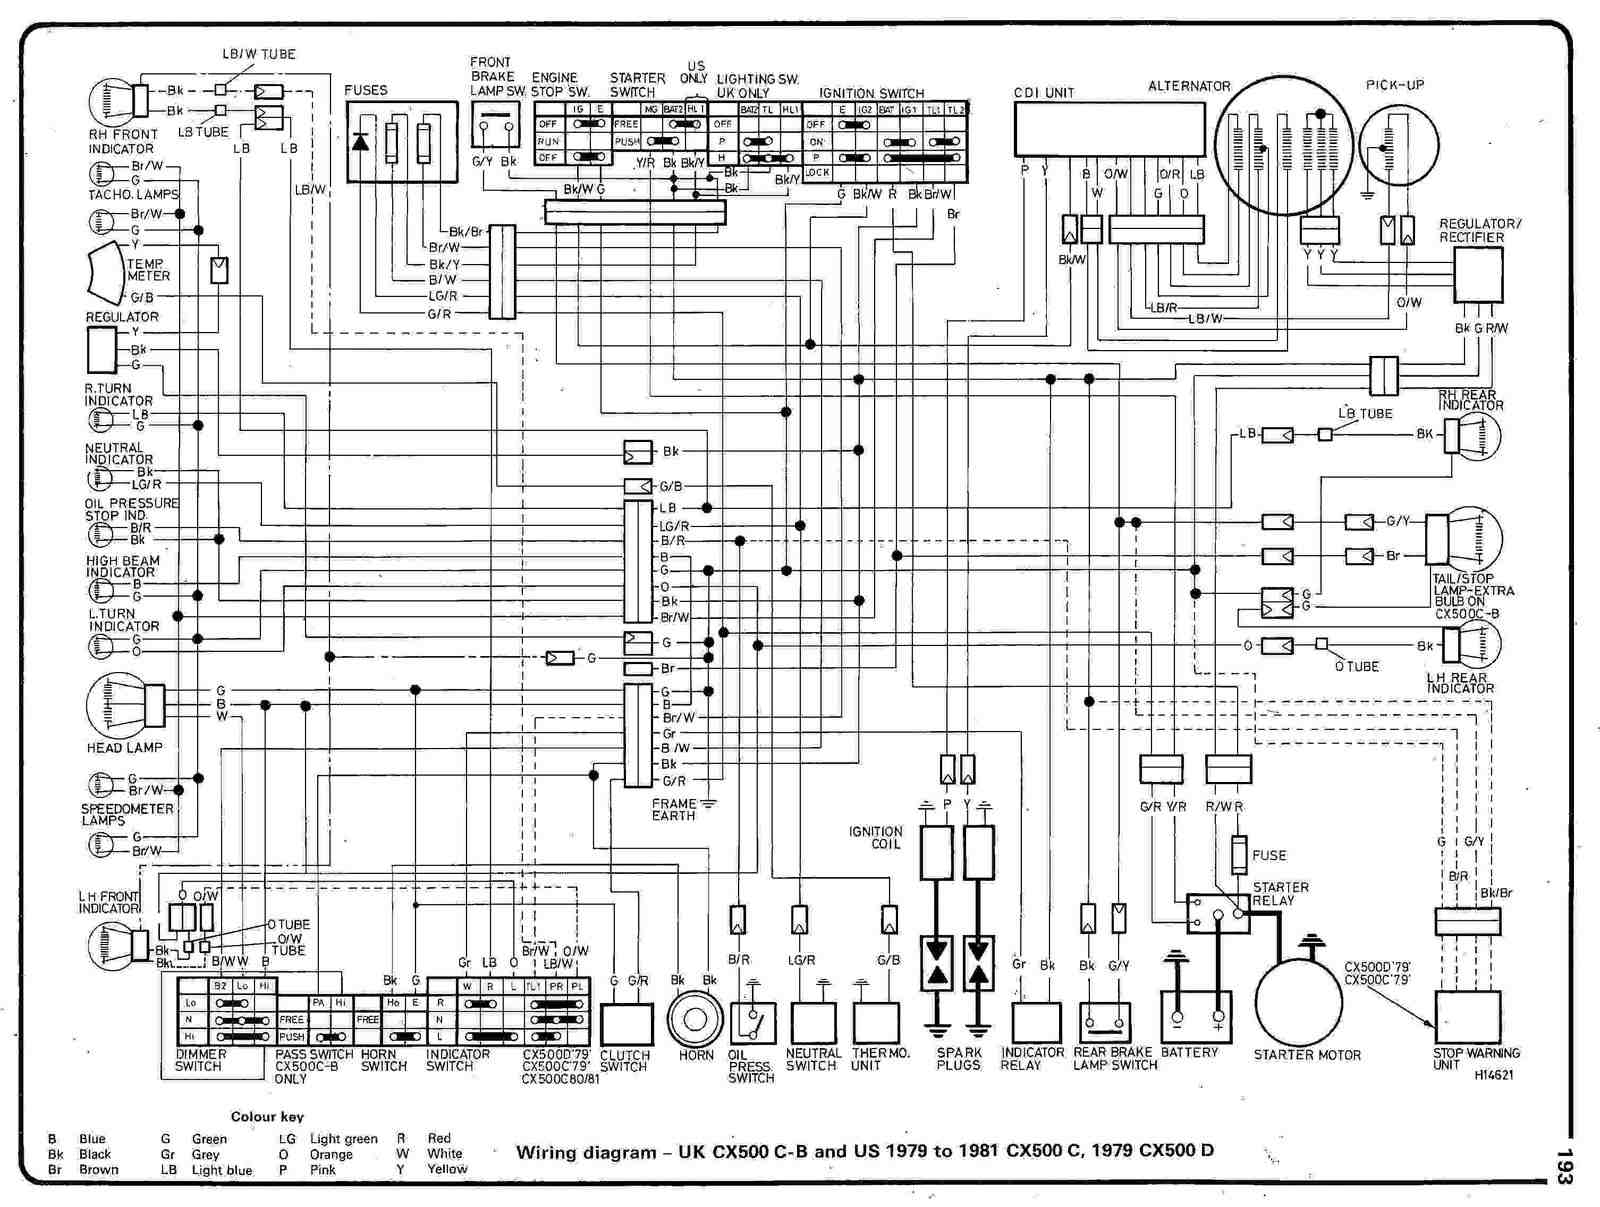 Dorable Gl1200 Wiring Diagram Model - Electrical and Wiring Diagram ...